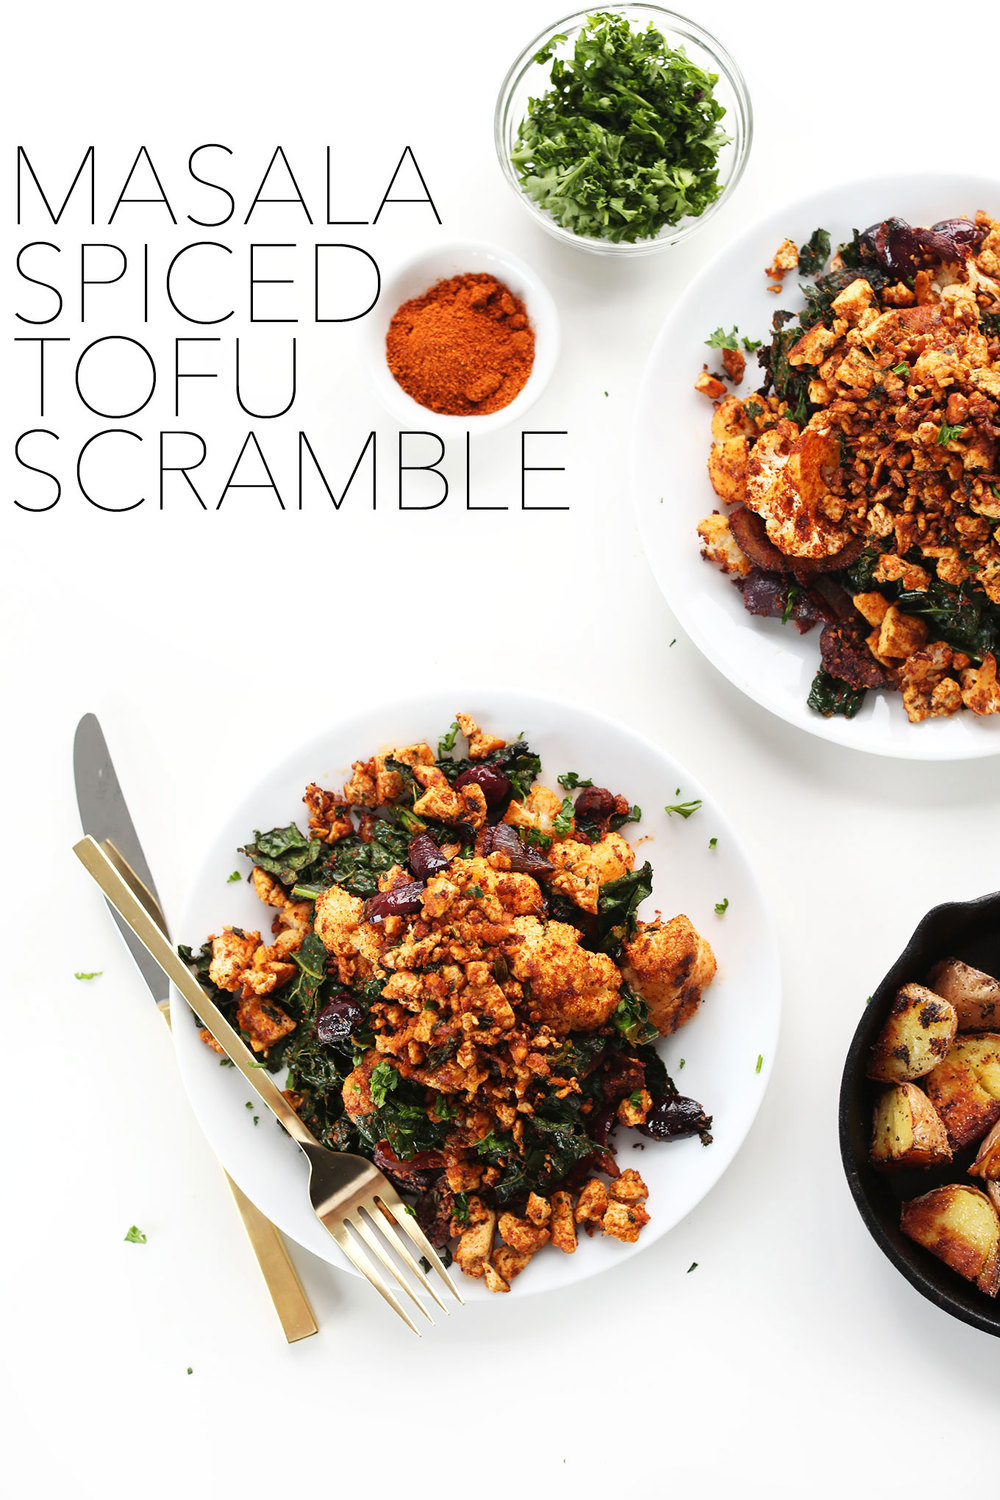 HEALTHY-DELICIOUS-30-minute-Masala-Spiced-Tofu-Scramble-with-roasted-veggies-and-the-BEST-Breakfast-Potatoes-vegan-glutenfree.jpg